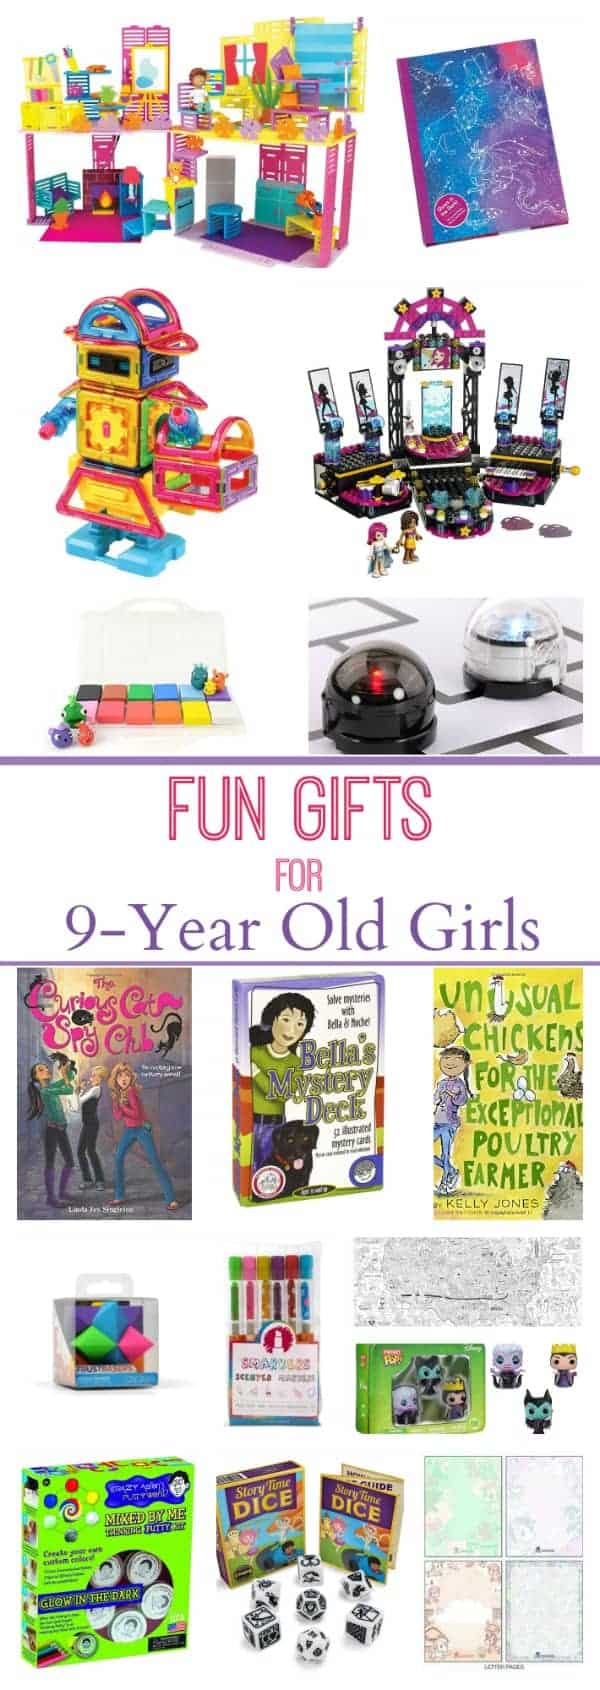 Toys For 9 Year Old Boys 2014 : Gifts for year old girls imagination soup